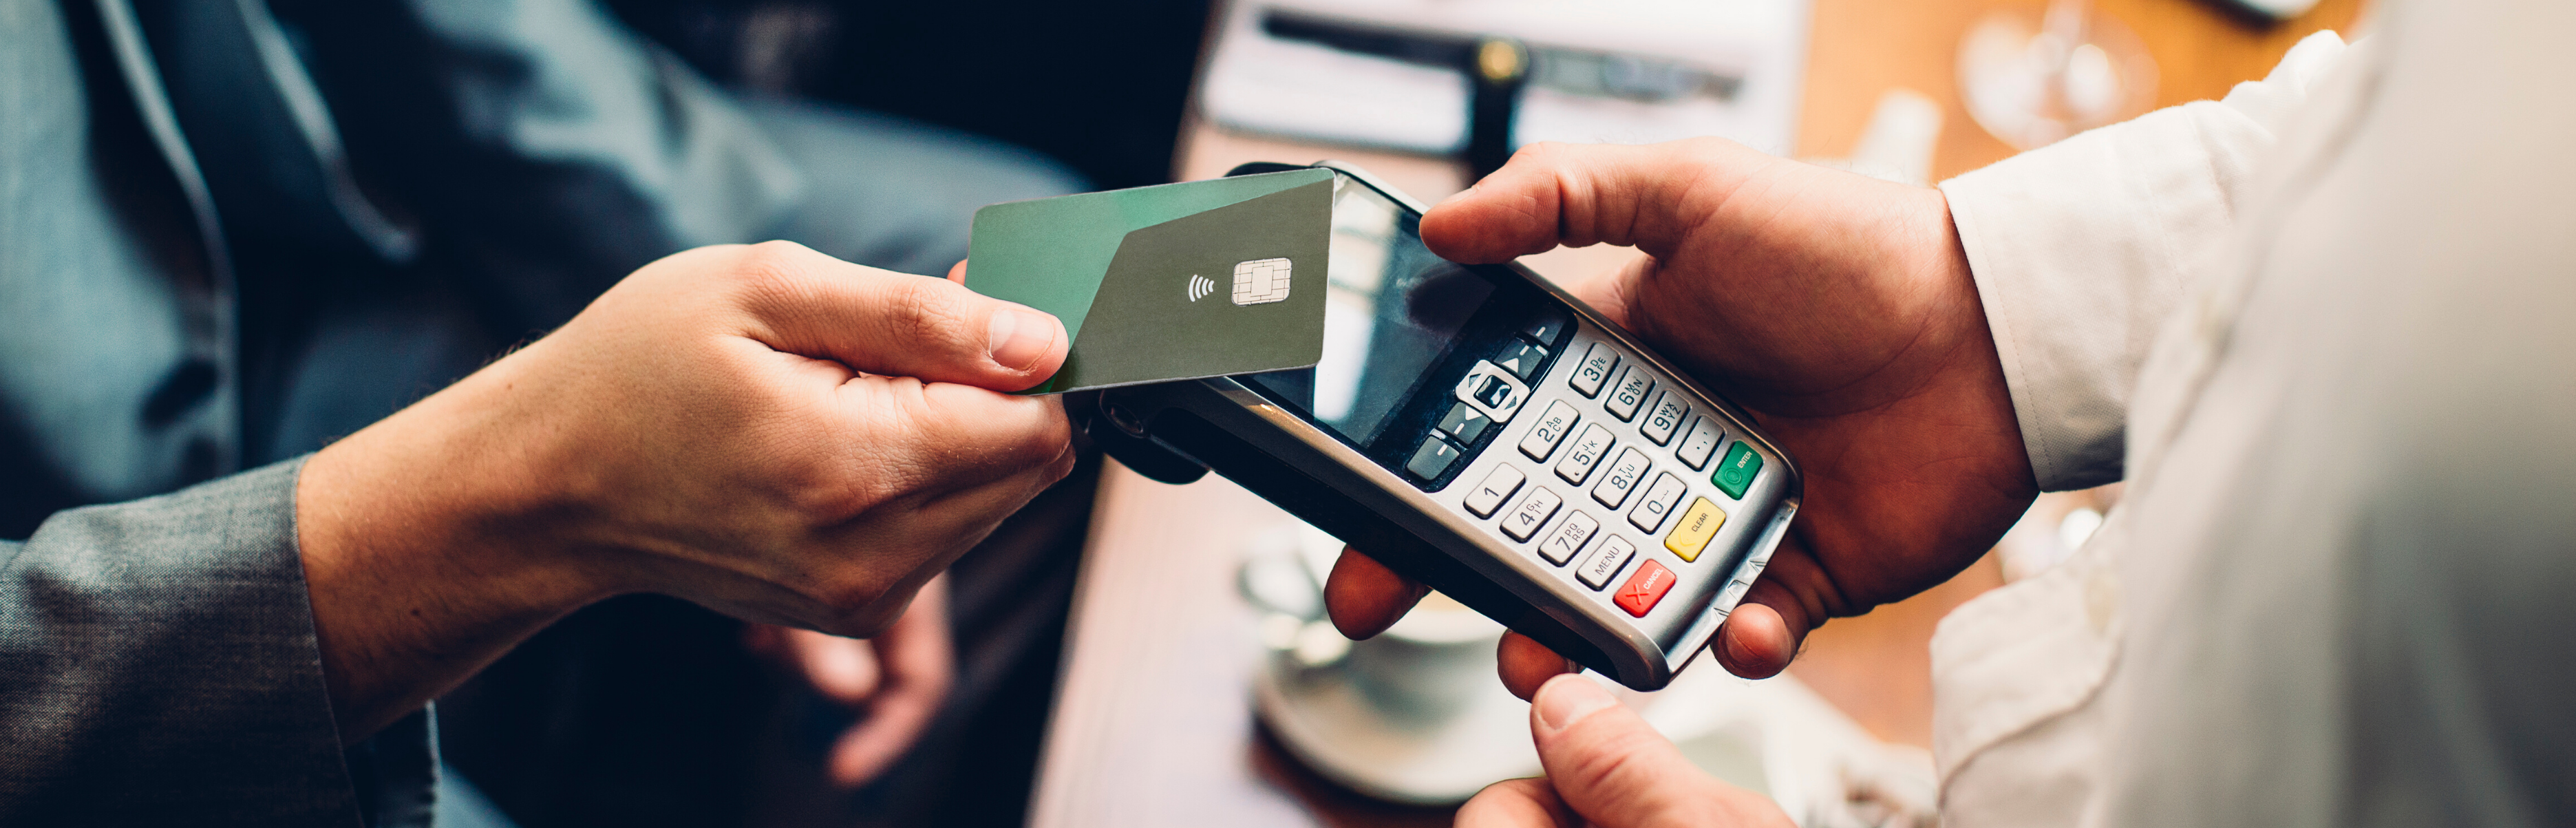 Using BOIPA's contactless card terminals to perform a payment through tap